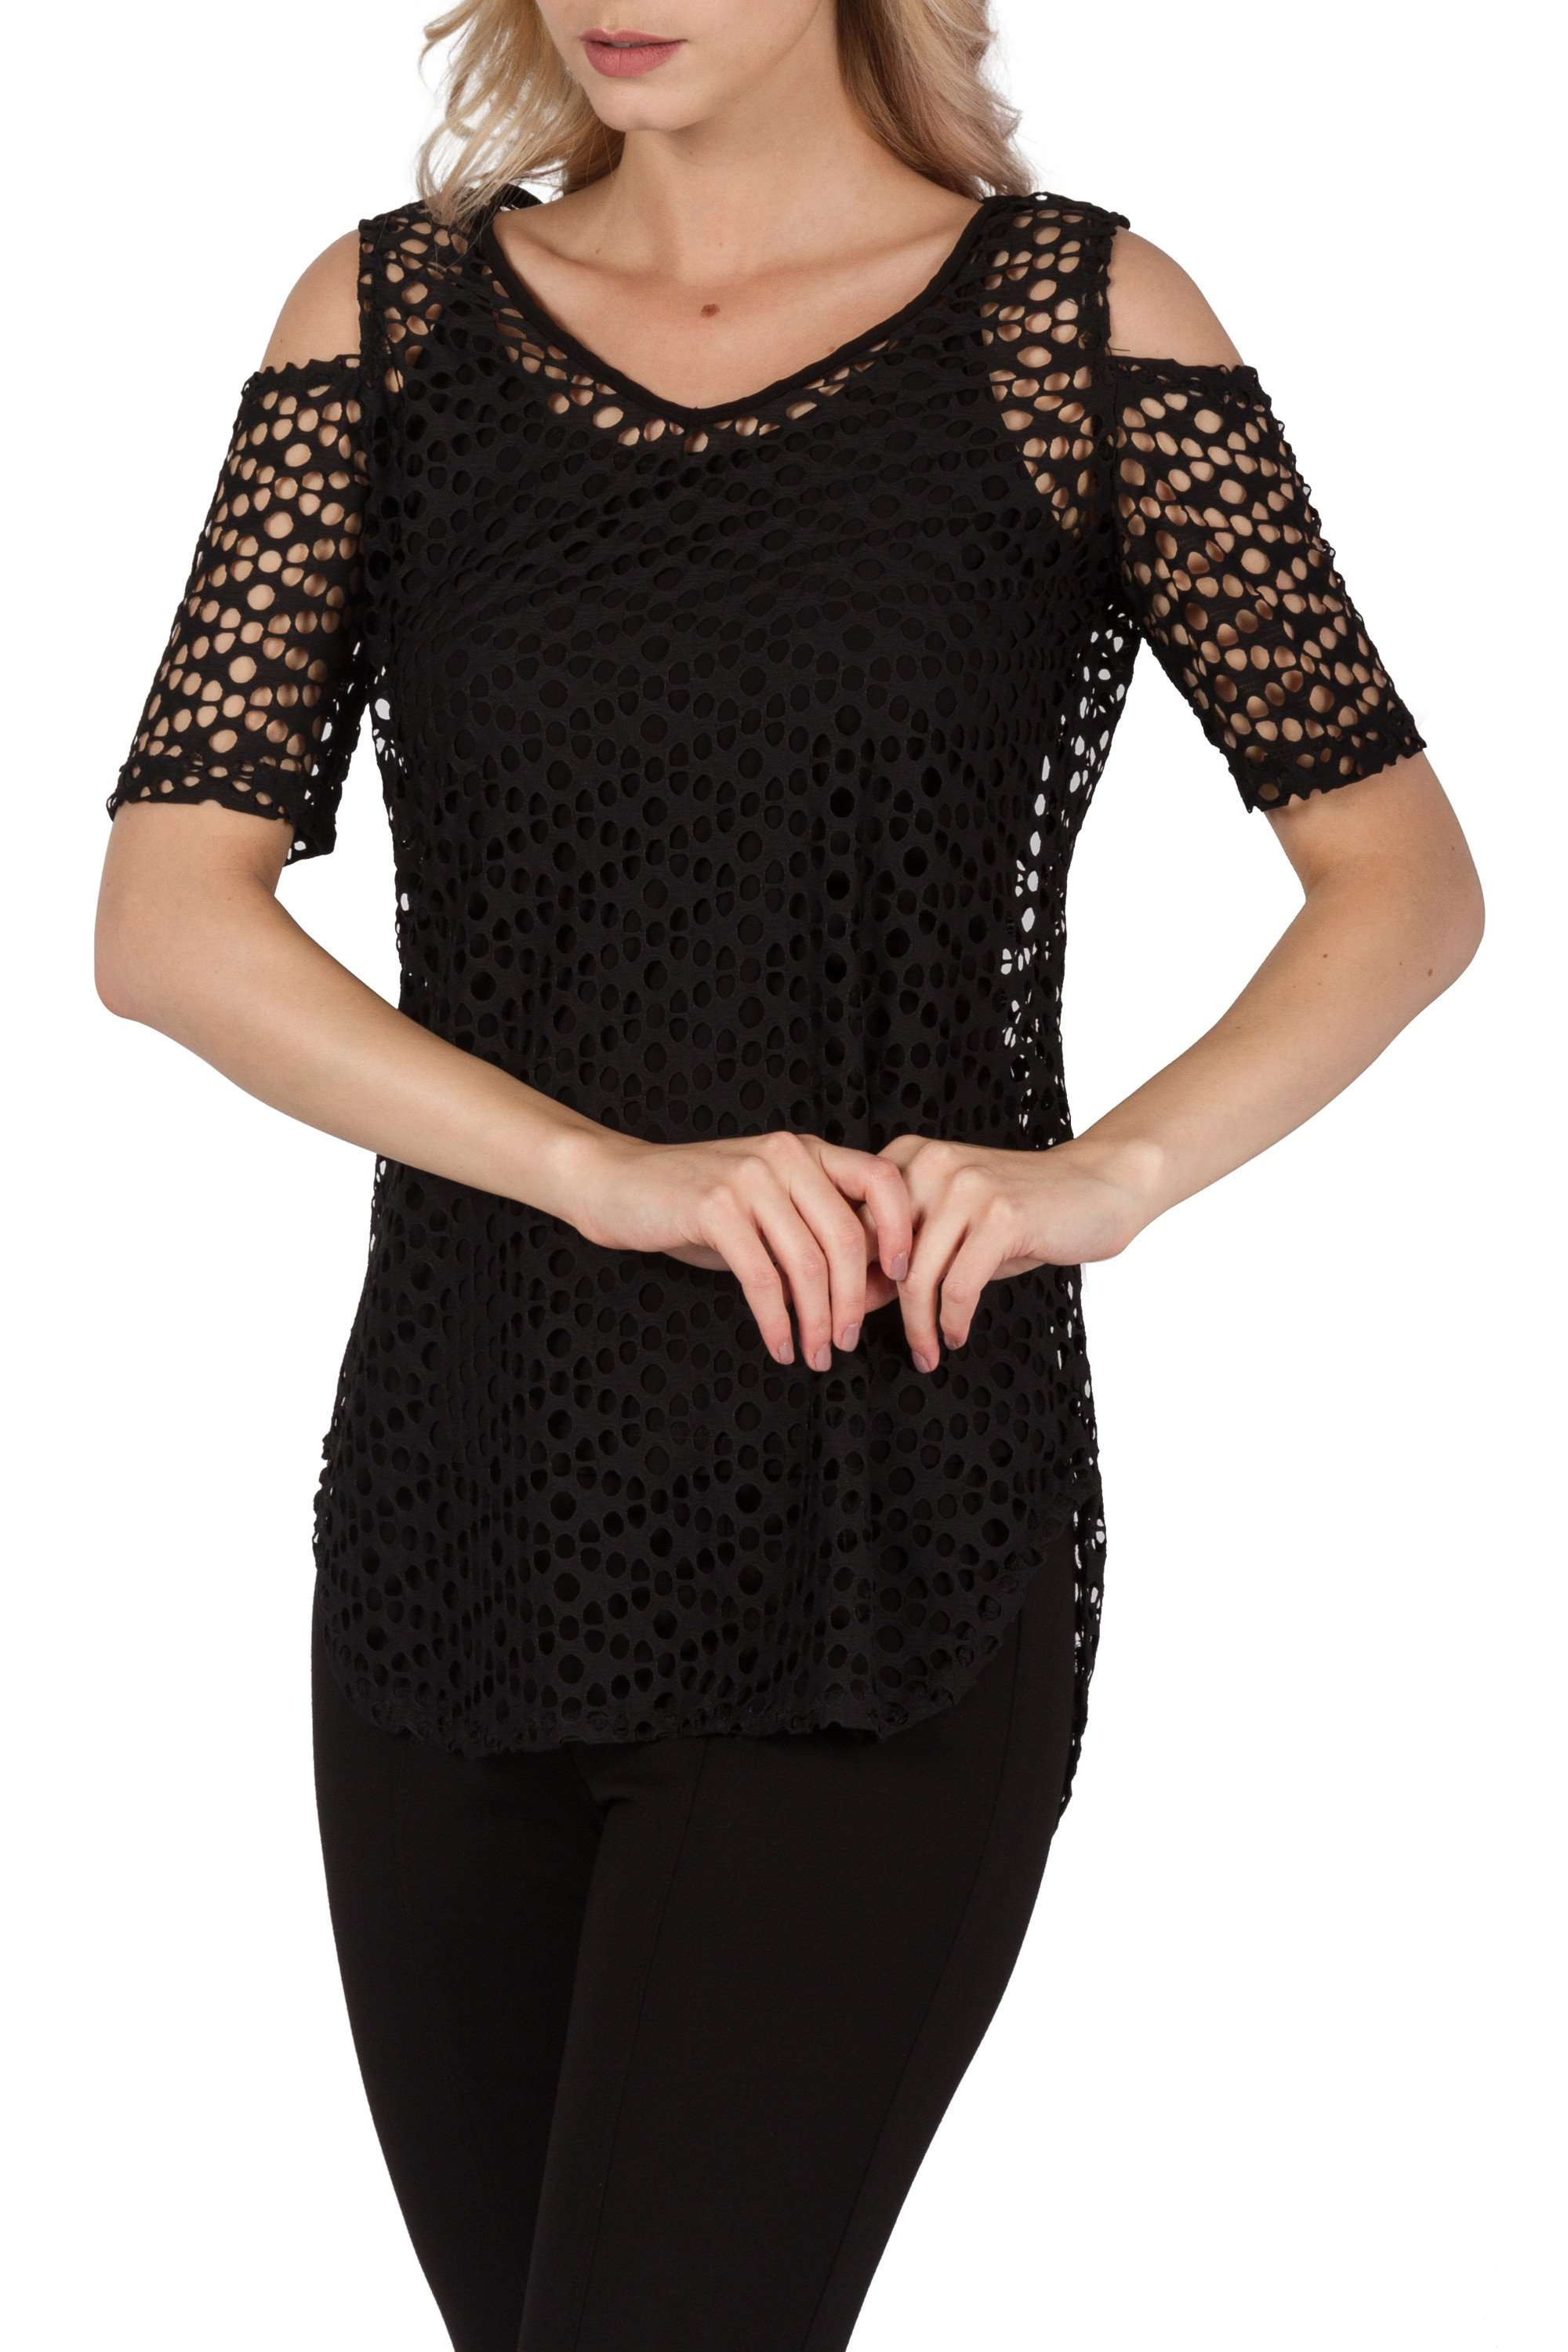 Cold Shoulder Black Mesh Top